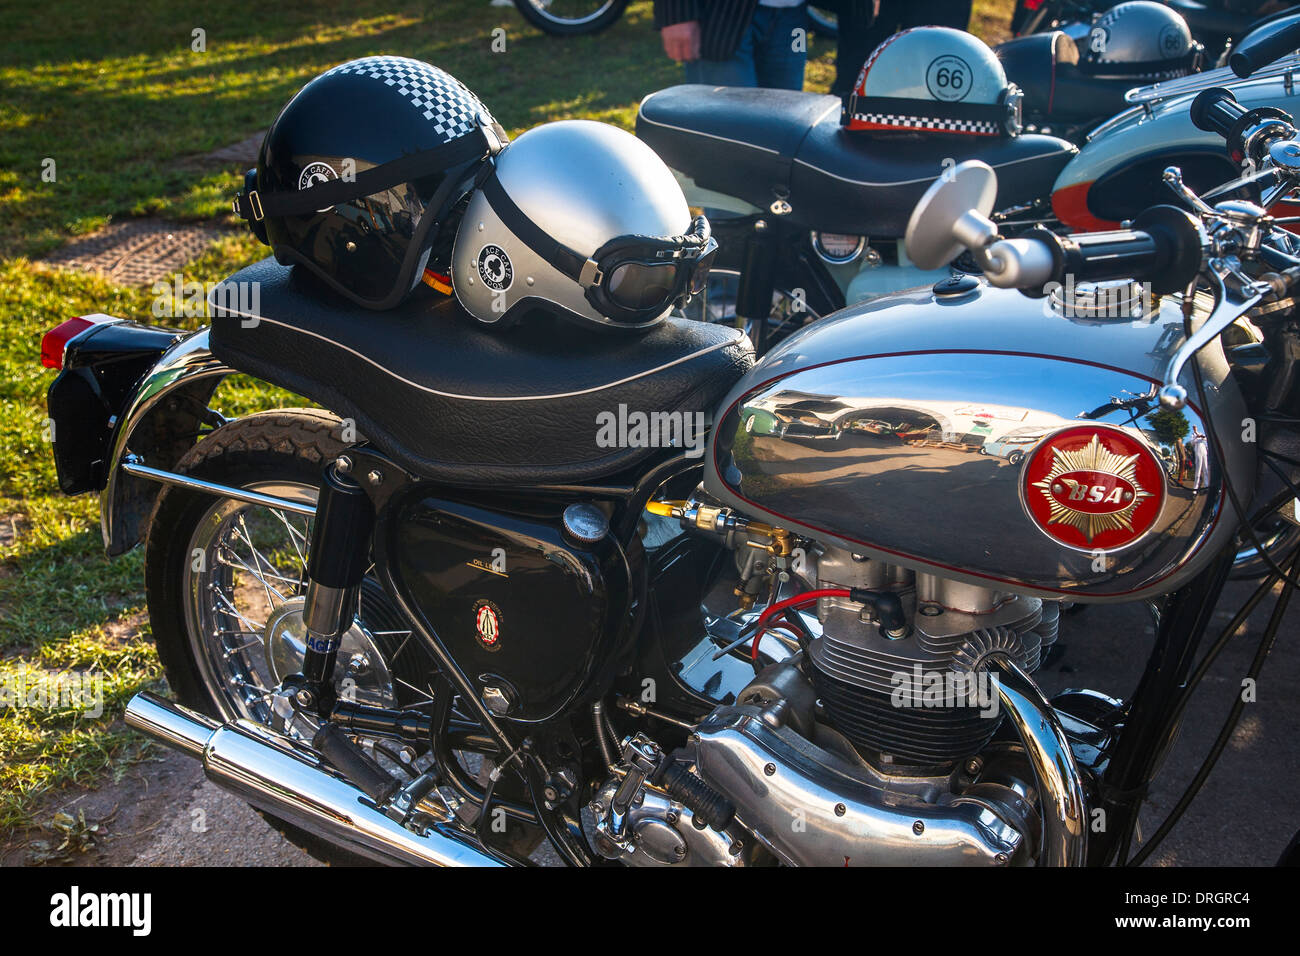 BSA vintage motorbikes at the Goodwood Revival 2013, West Sussex, UK - Stock Image